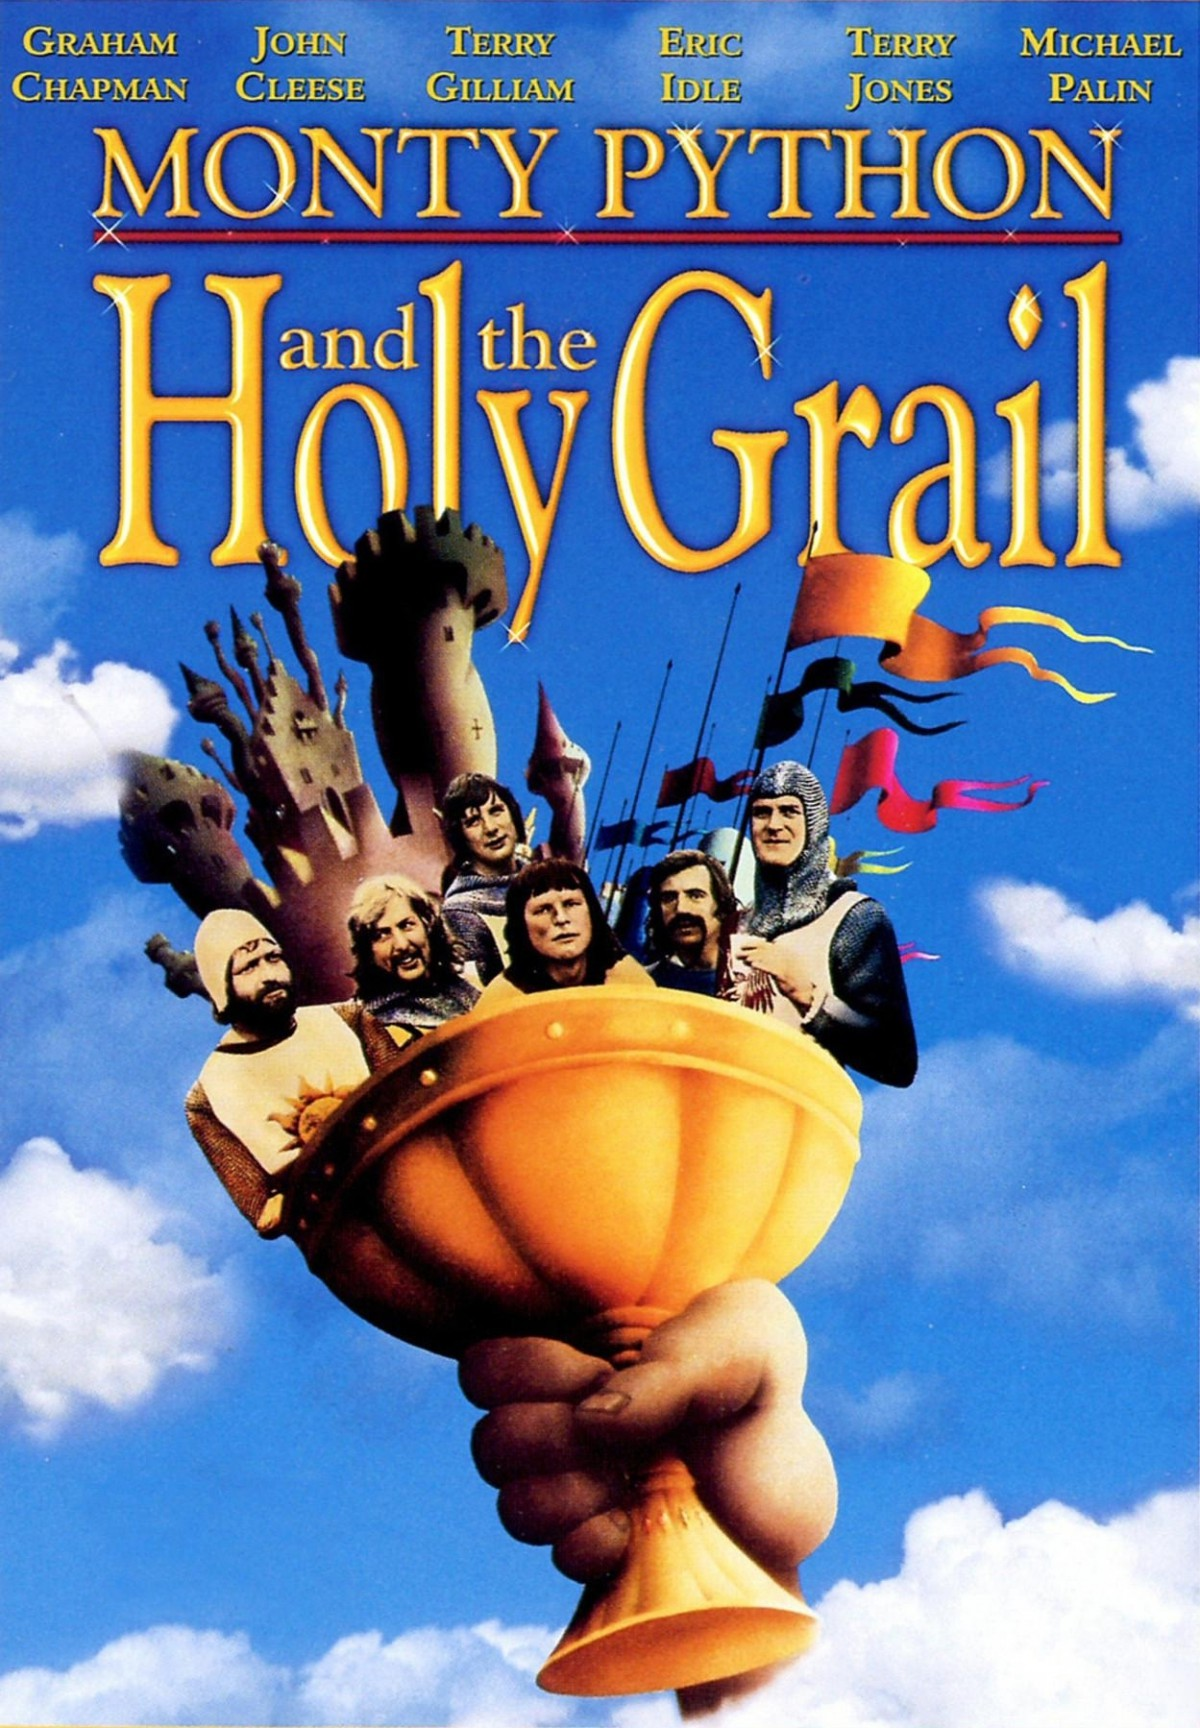 19. Monty Python and the Holy Grail (1974)